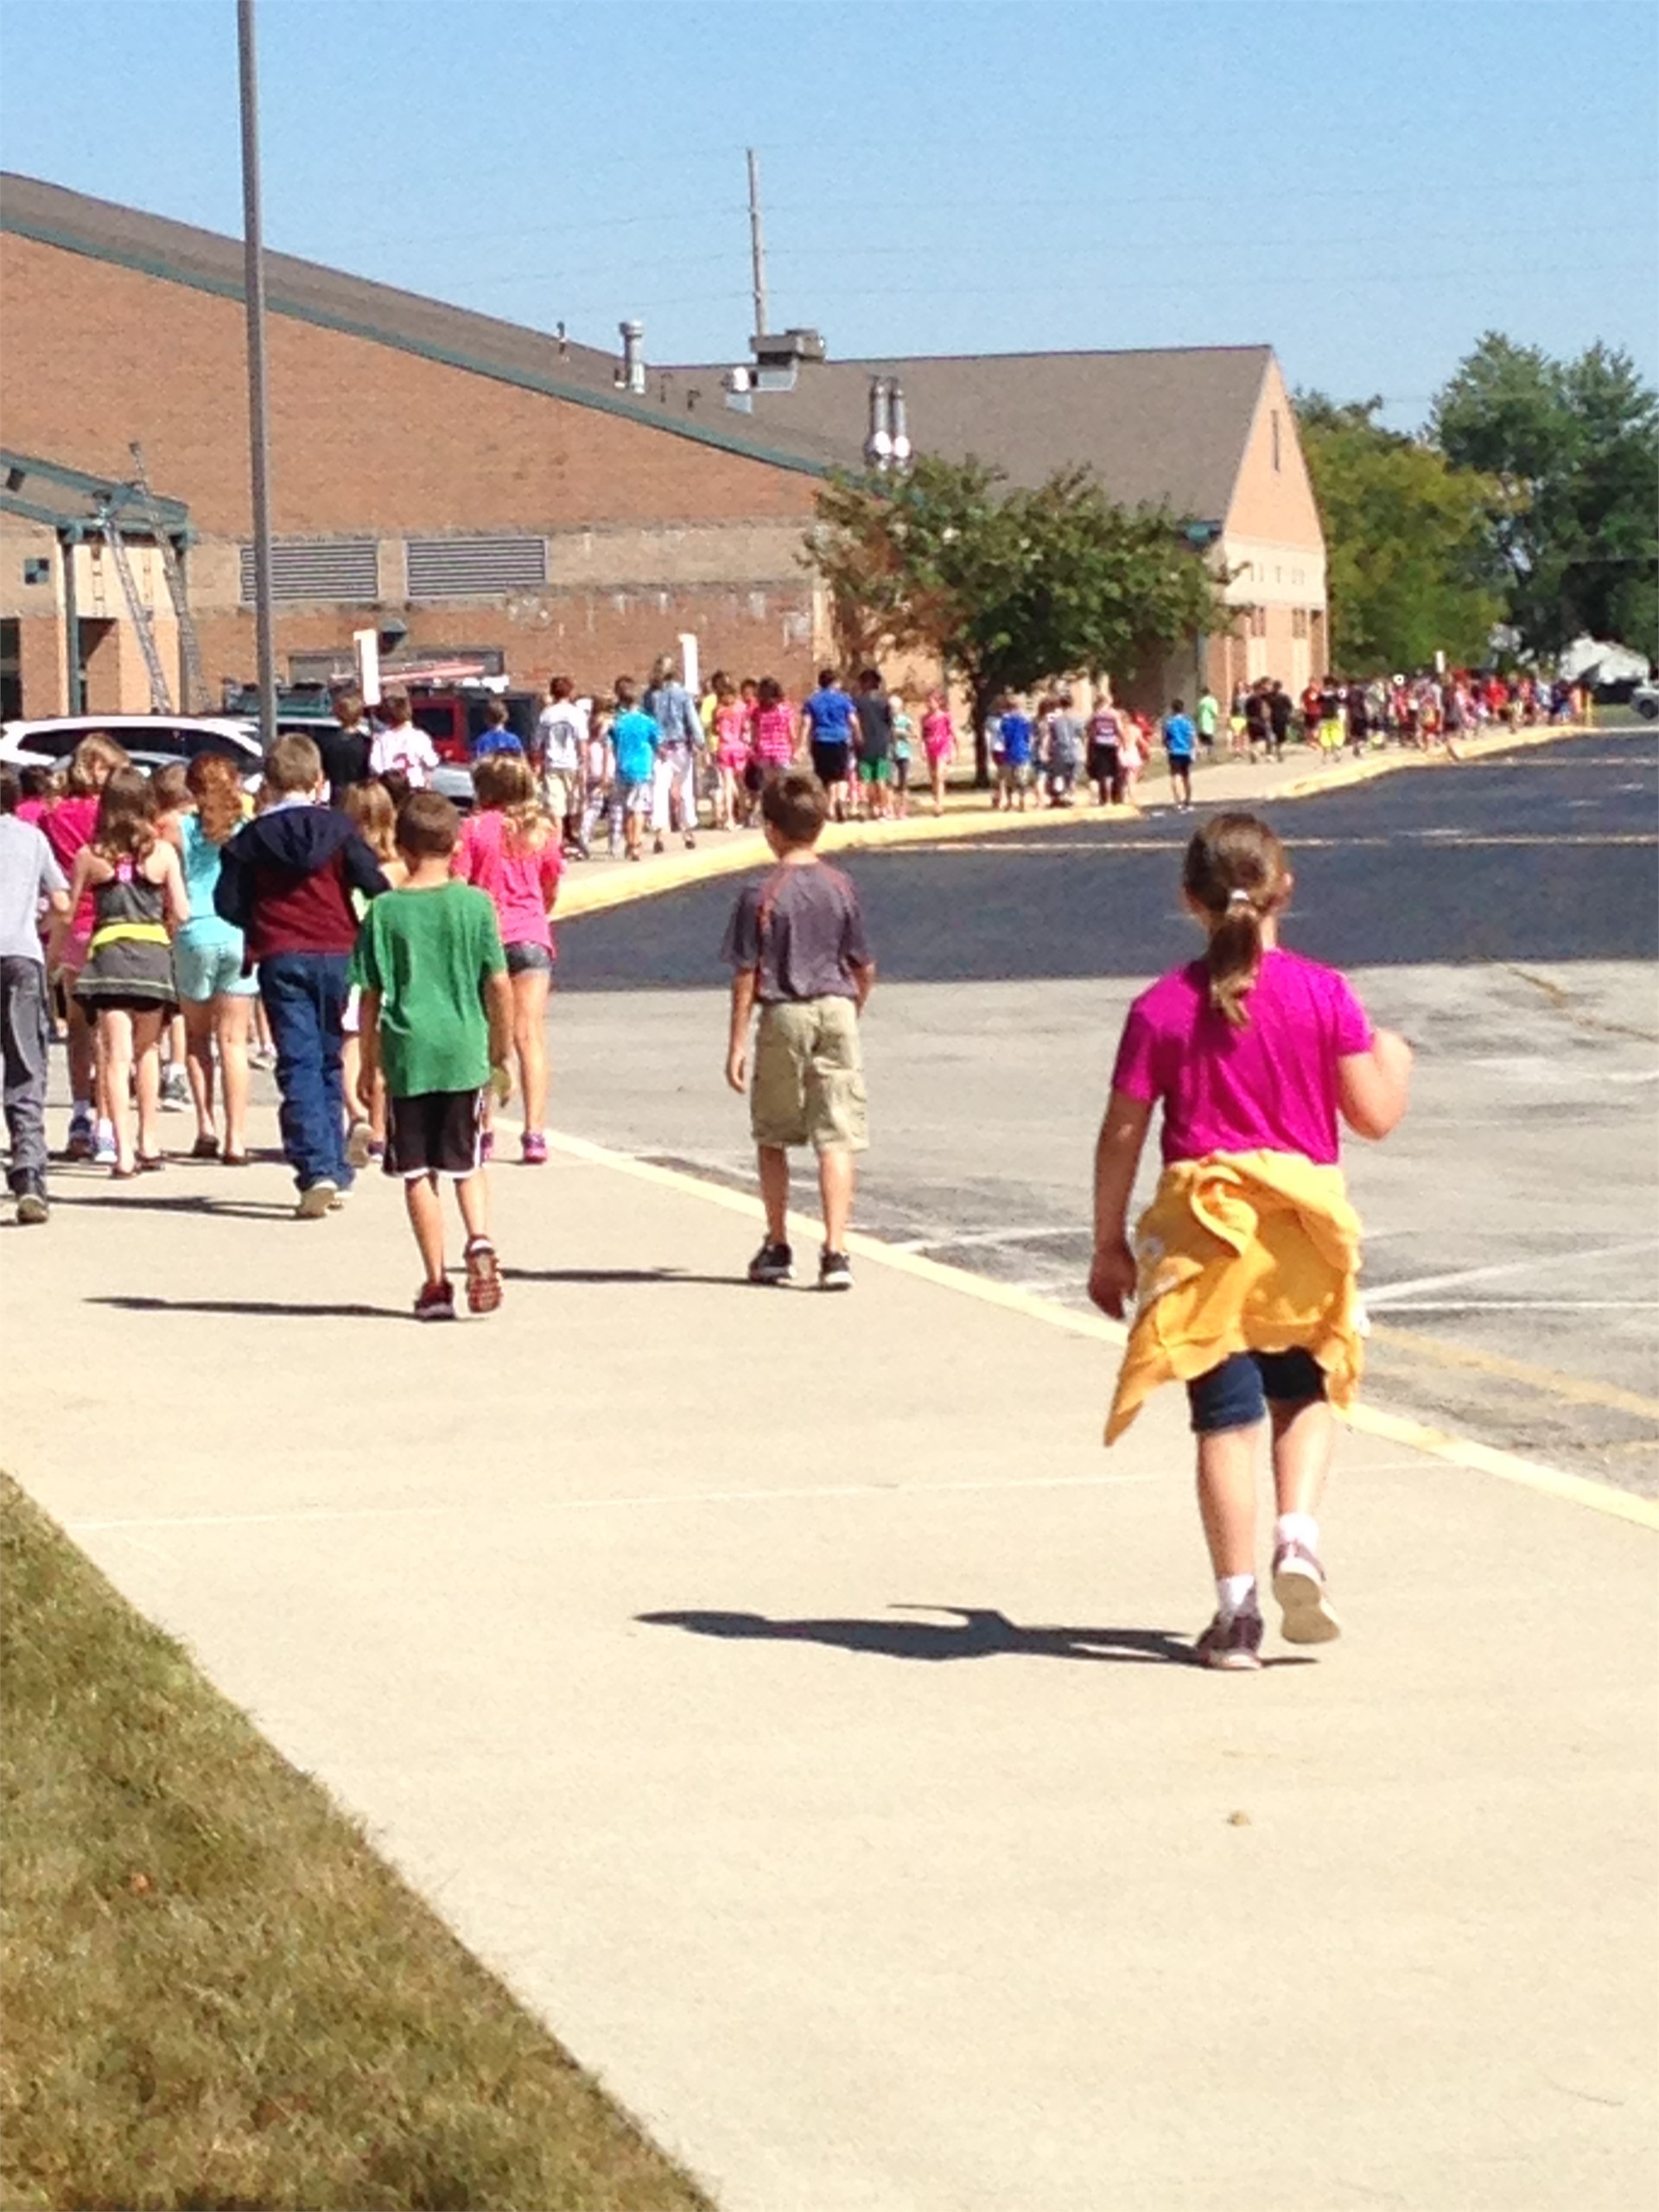 Mileage Cub started September 10th and is every Thursday during afternoon recess!